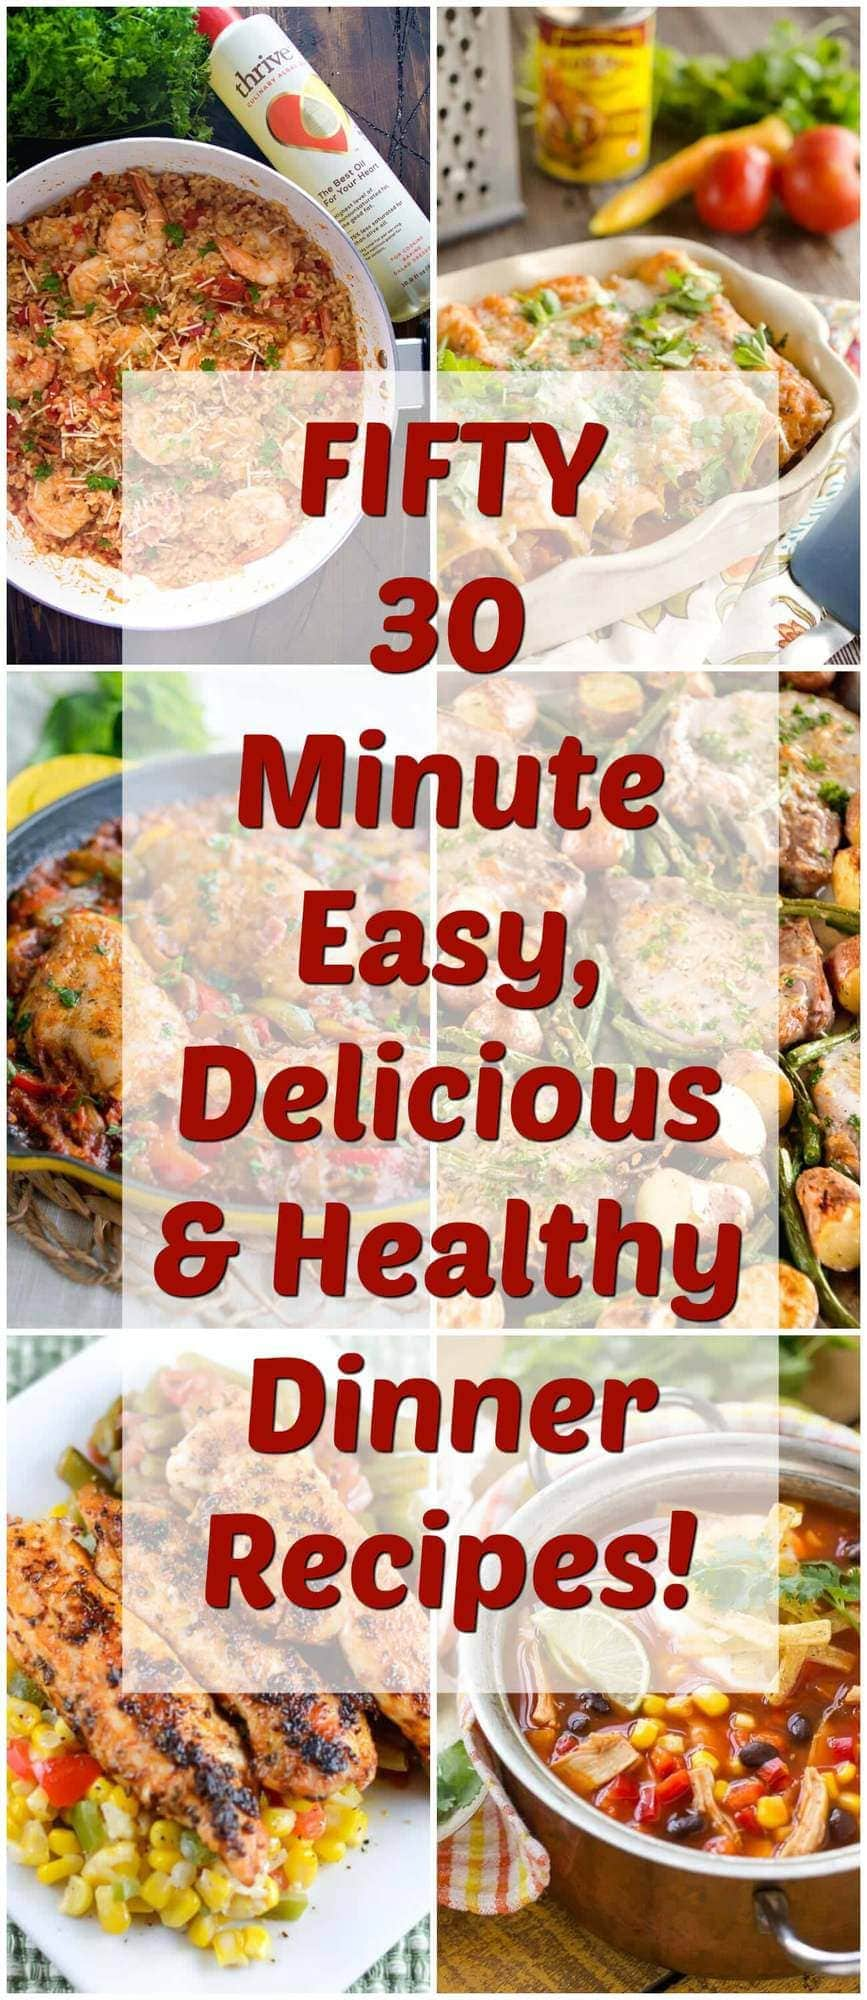 30 Easy Nail Designs For Beginners: FIFTY 30 Minute Easy, Delicious & Healthy Dinner Recipes